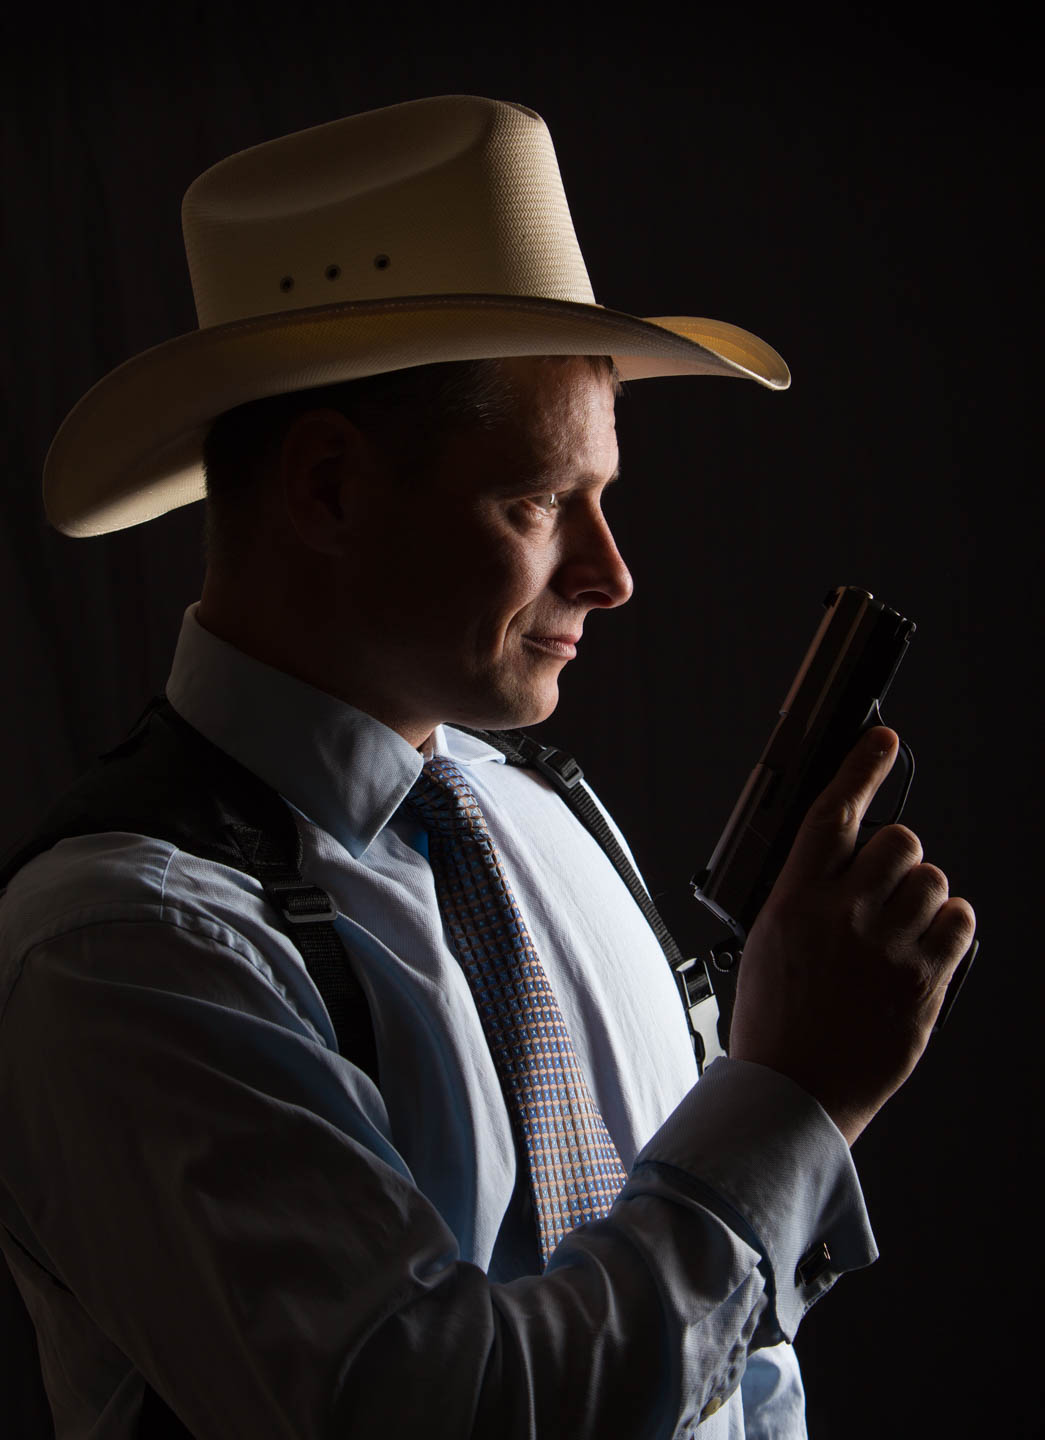 Erno loves the cowboy look and the second amendment so we photographed him and the gun